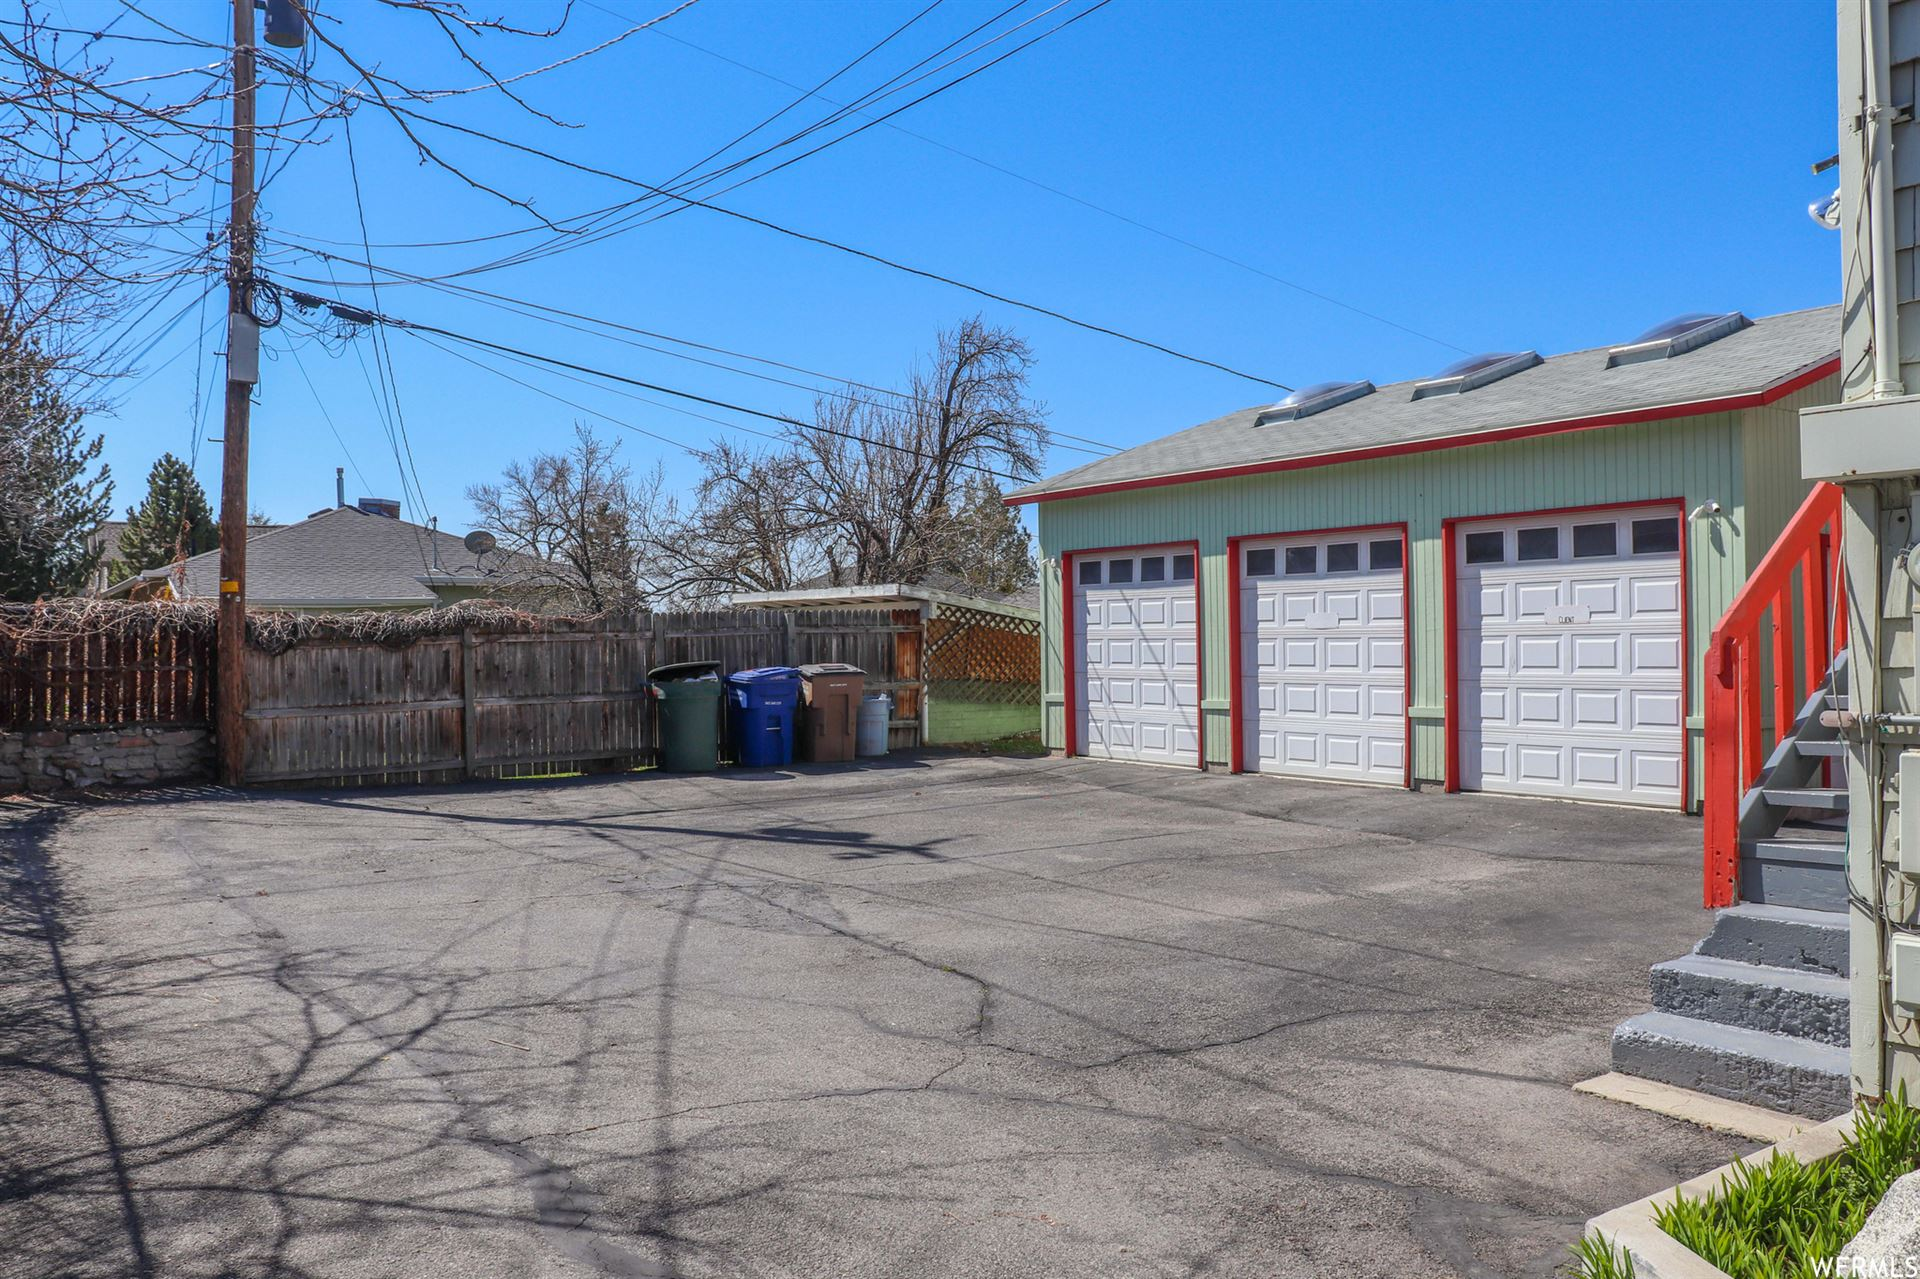 Photo of 1260 E EMERSON AVE, Salt Lake City, UT 84105 (MLS # 1734305)